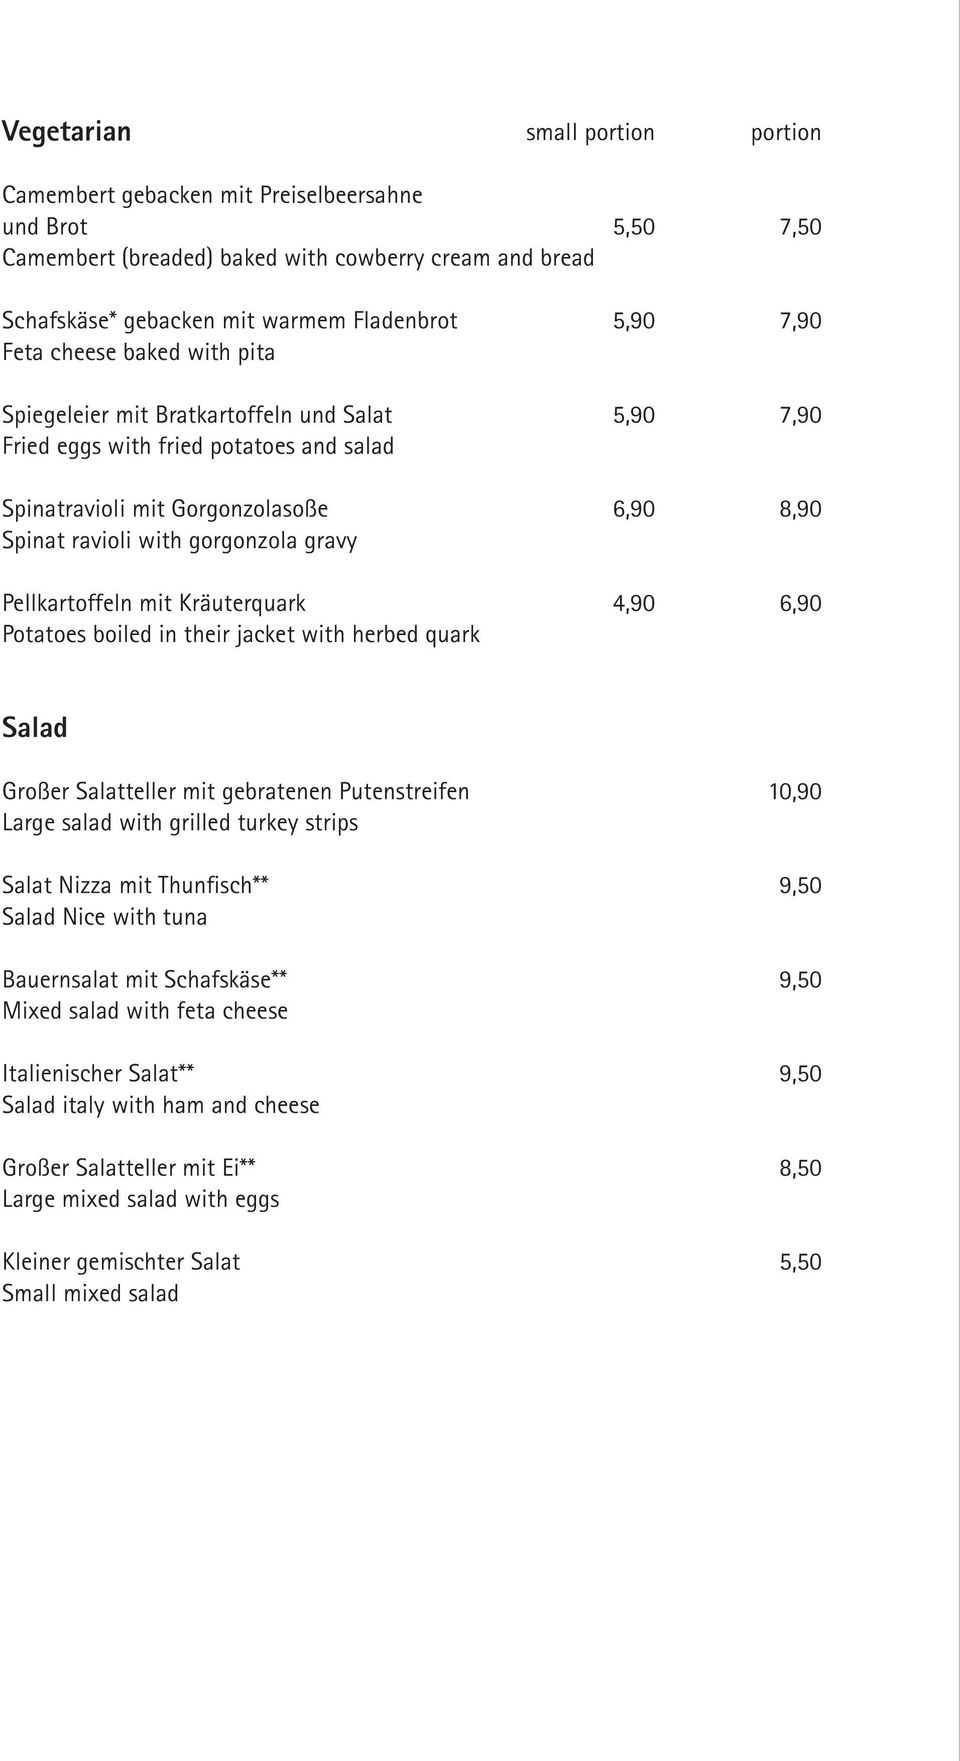 Kräuterquark Potatoes boiled in their jacket with herbed quark 4,90 Salad Großer Salatteller mit gebratenen Putenstreifen Large salad with grilled turkey strips Salat Nizza mit Thunfisch** Salad Nice